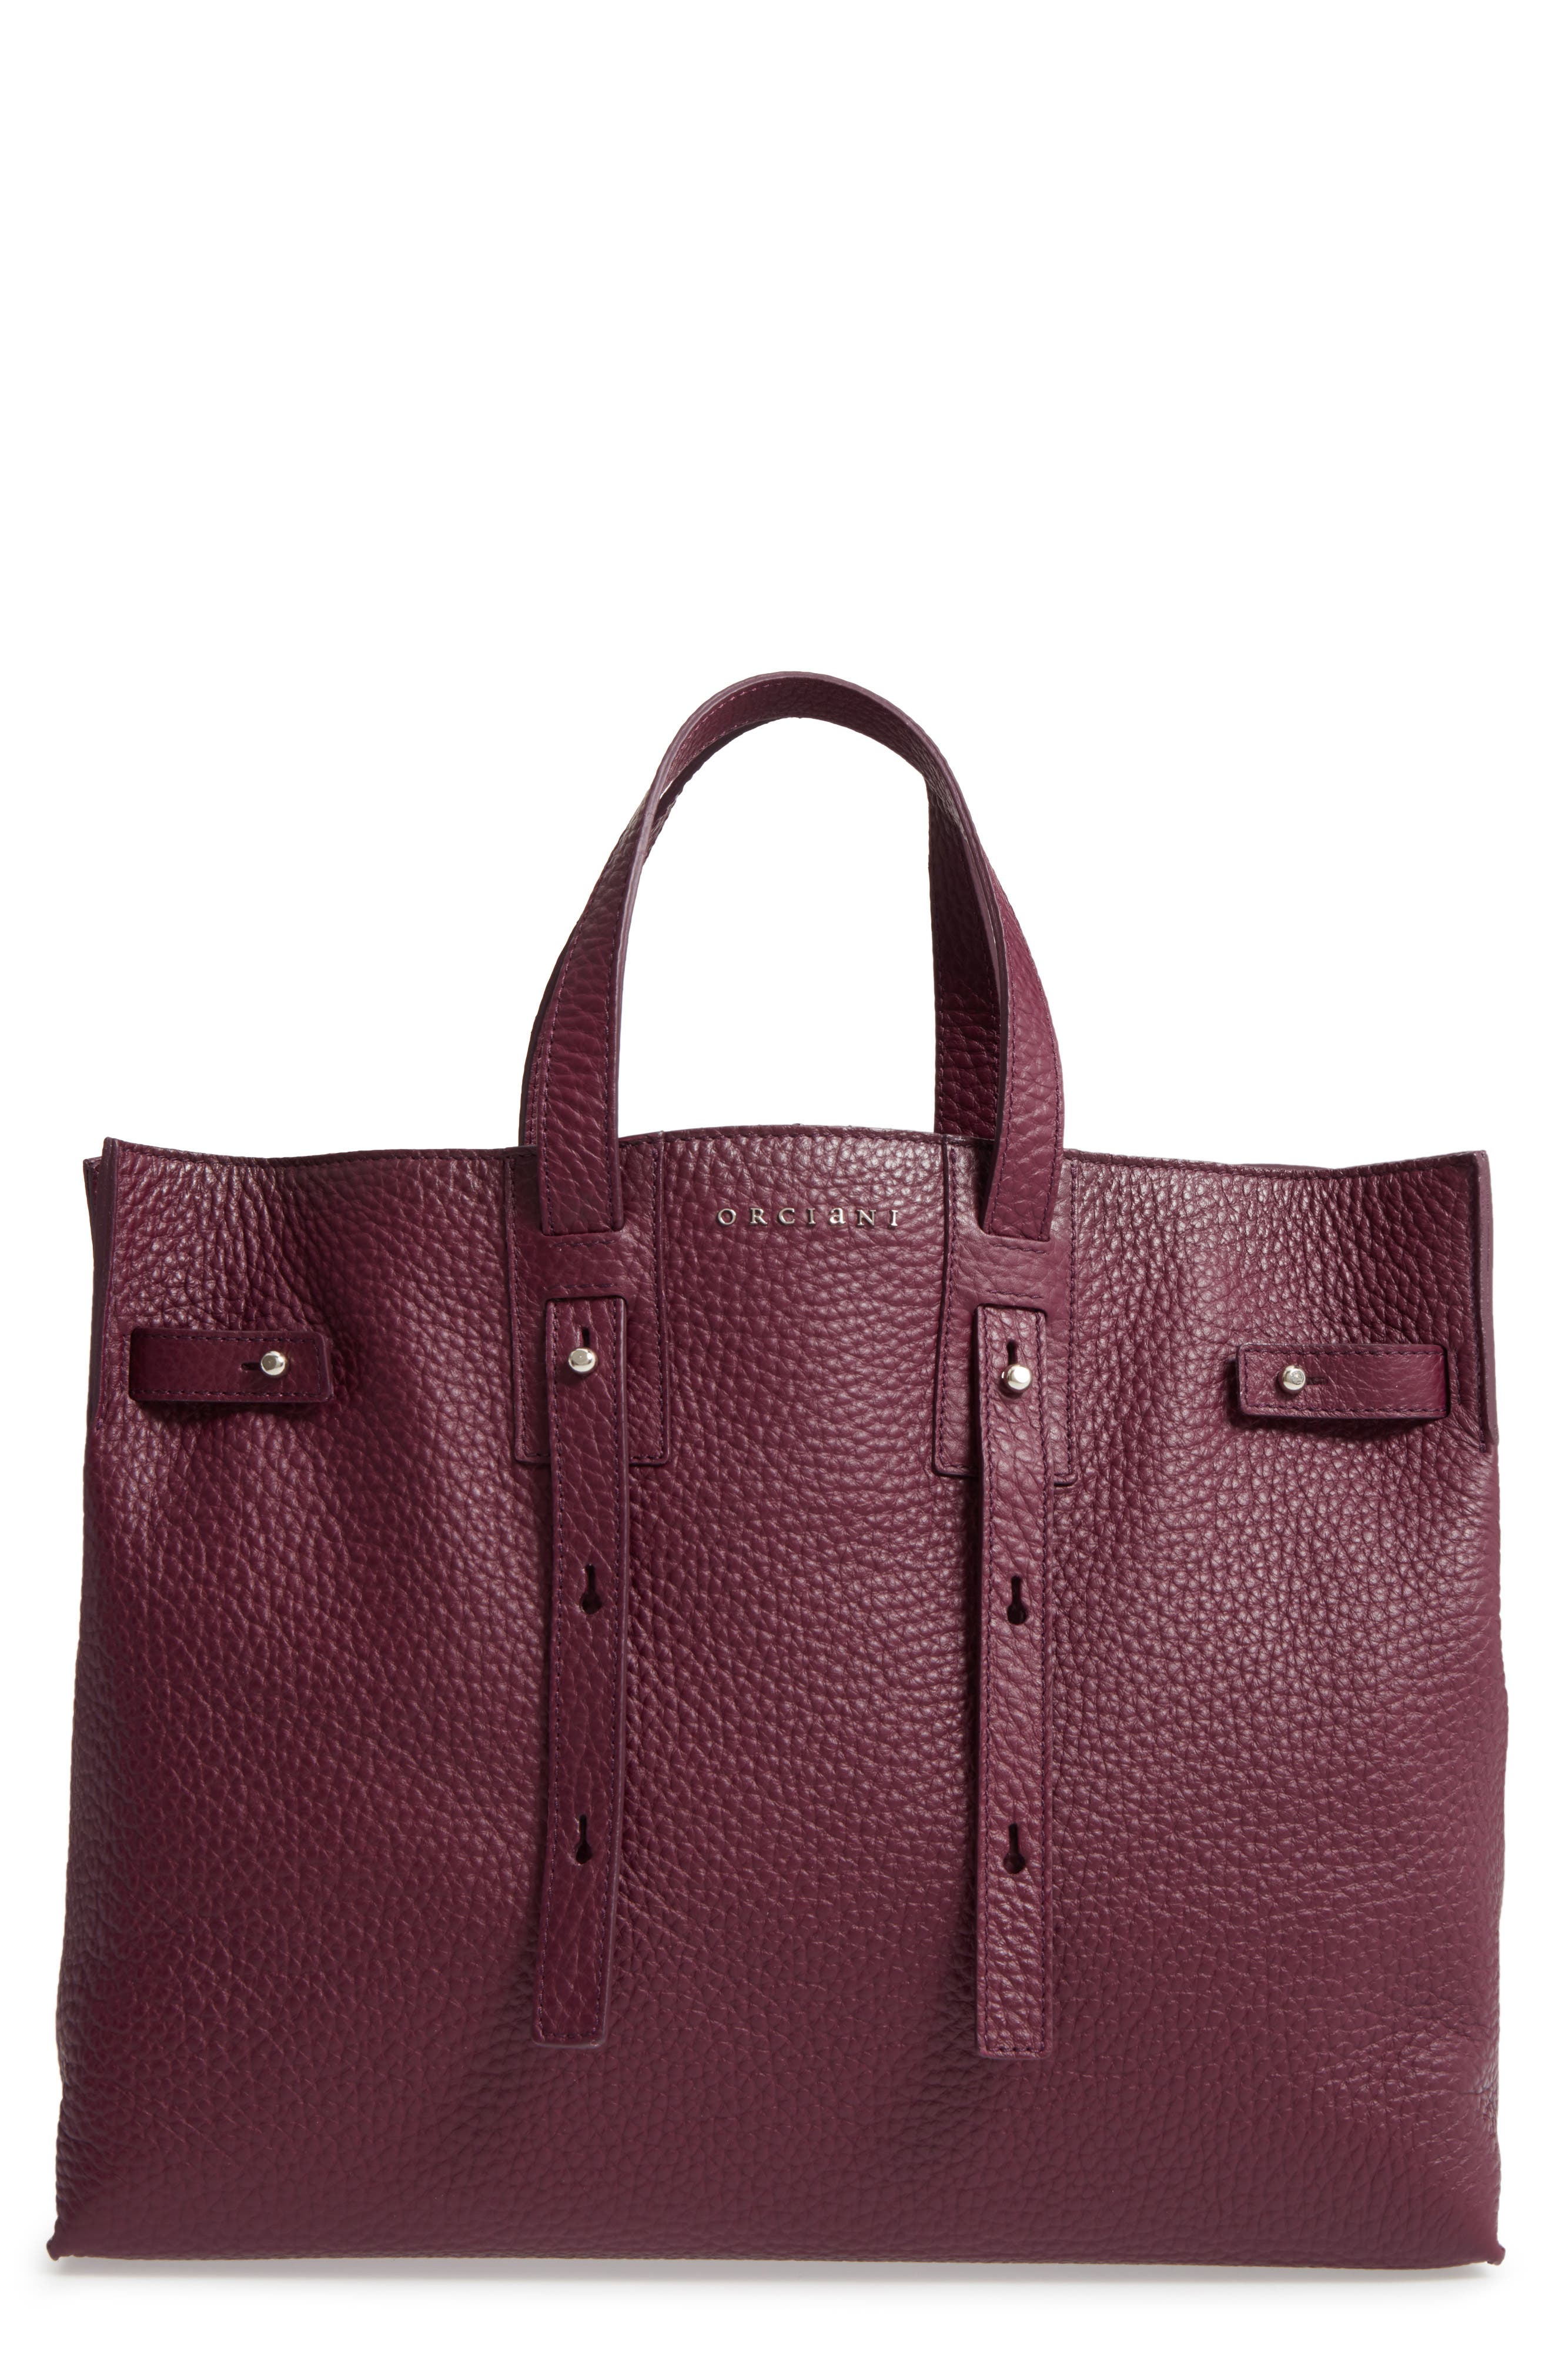 ORCIANI Petra Soft Calfskin Leather Tote